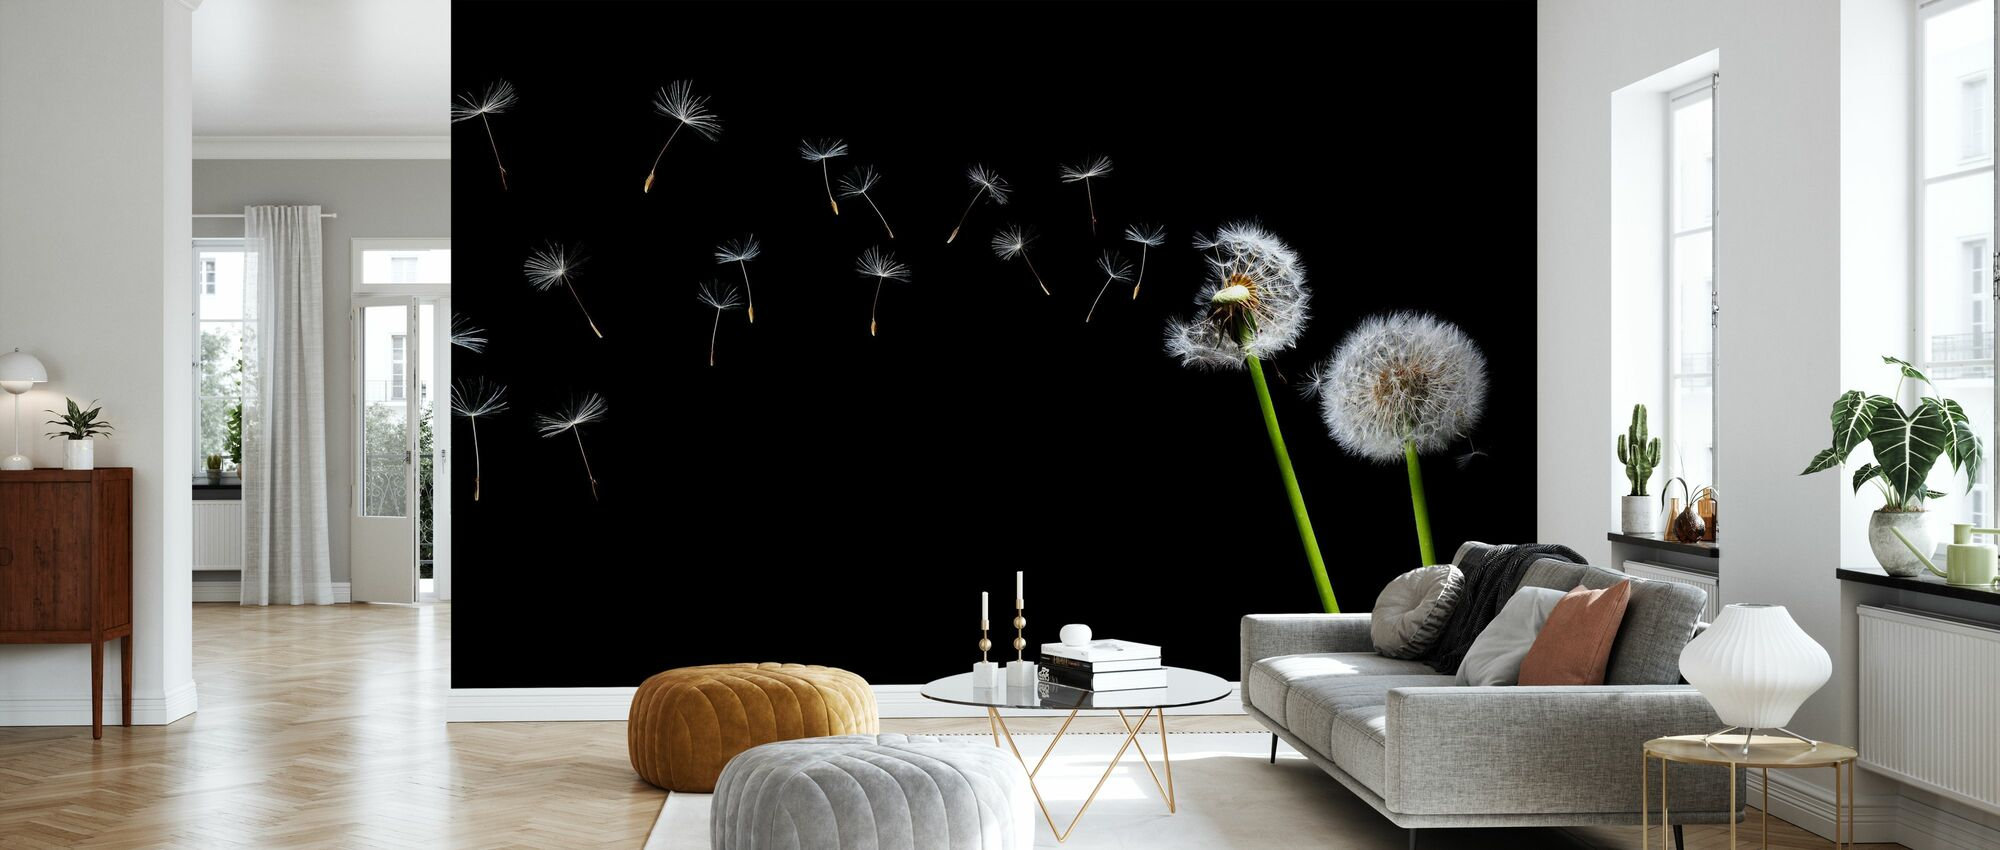 Dandelion Seeds in the Wind - Wallpaper - Living Room